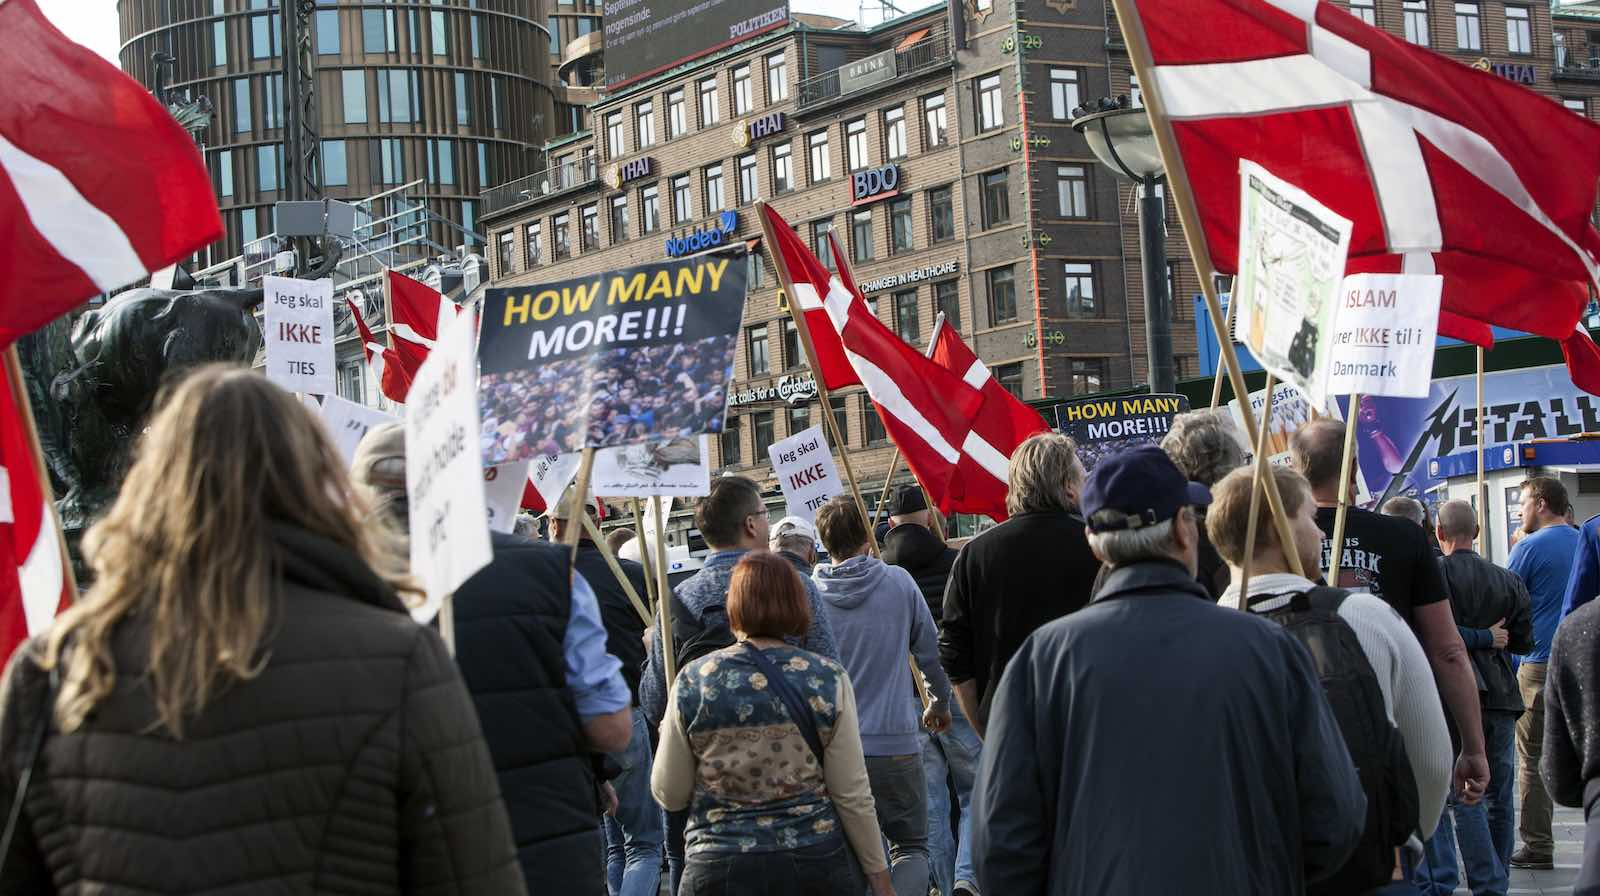 Protestors organised by For Freedom (Danish, read: For Frihed) demonstrate against Muslim through Copenhagen, Denmark, in 2016 (Photo: Ole Jensen via Getty)